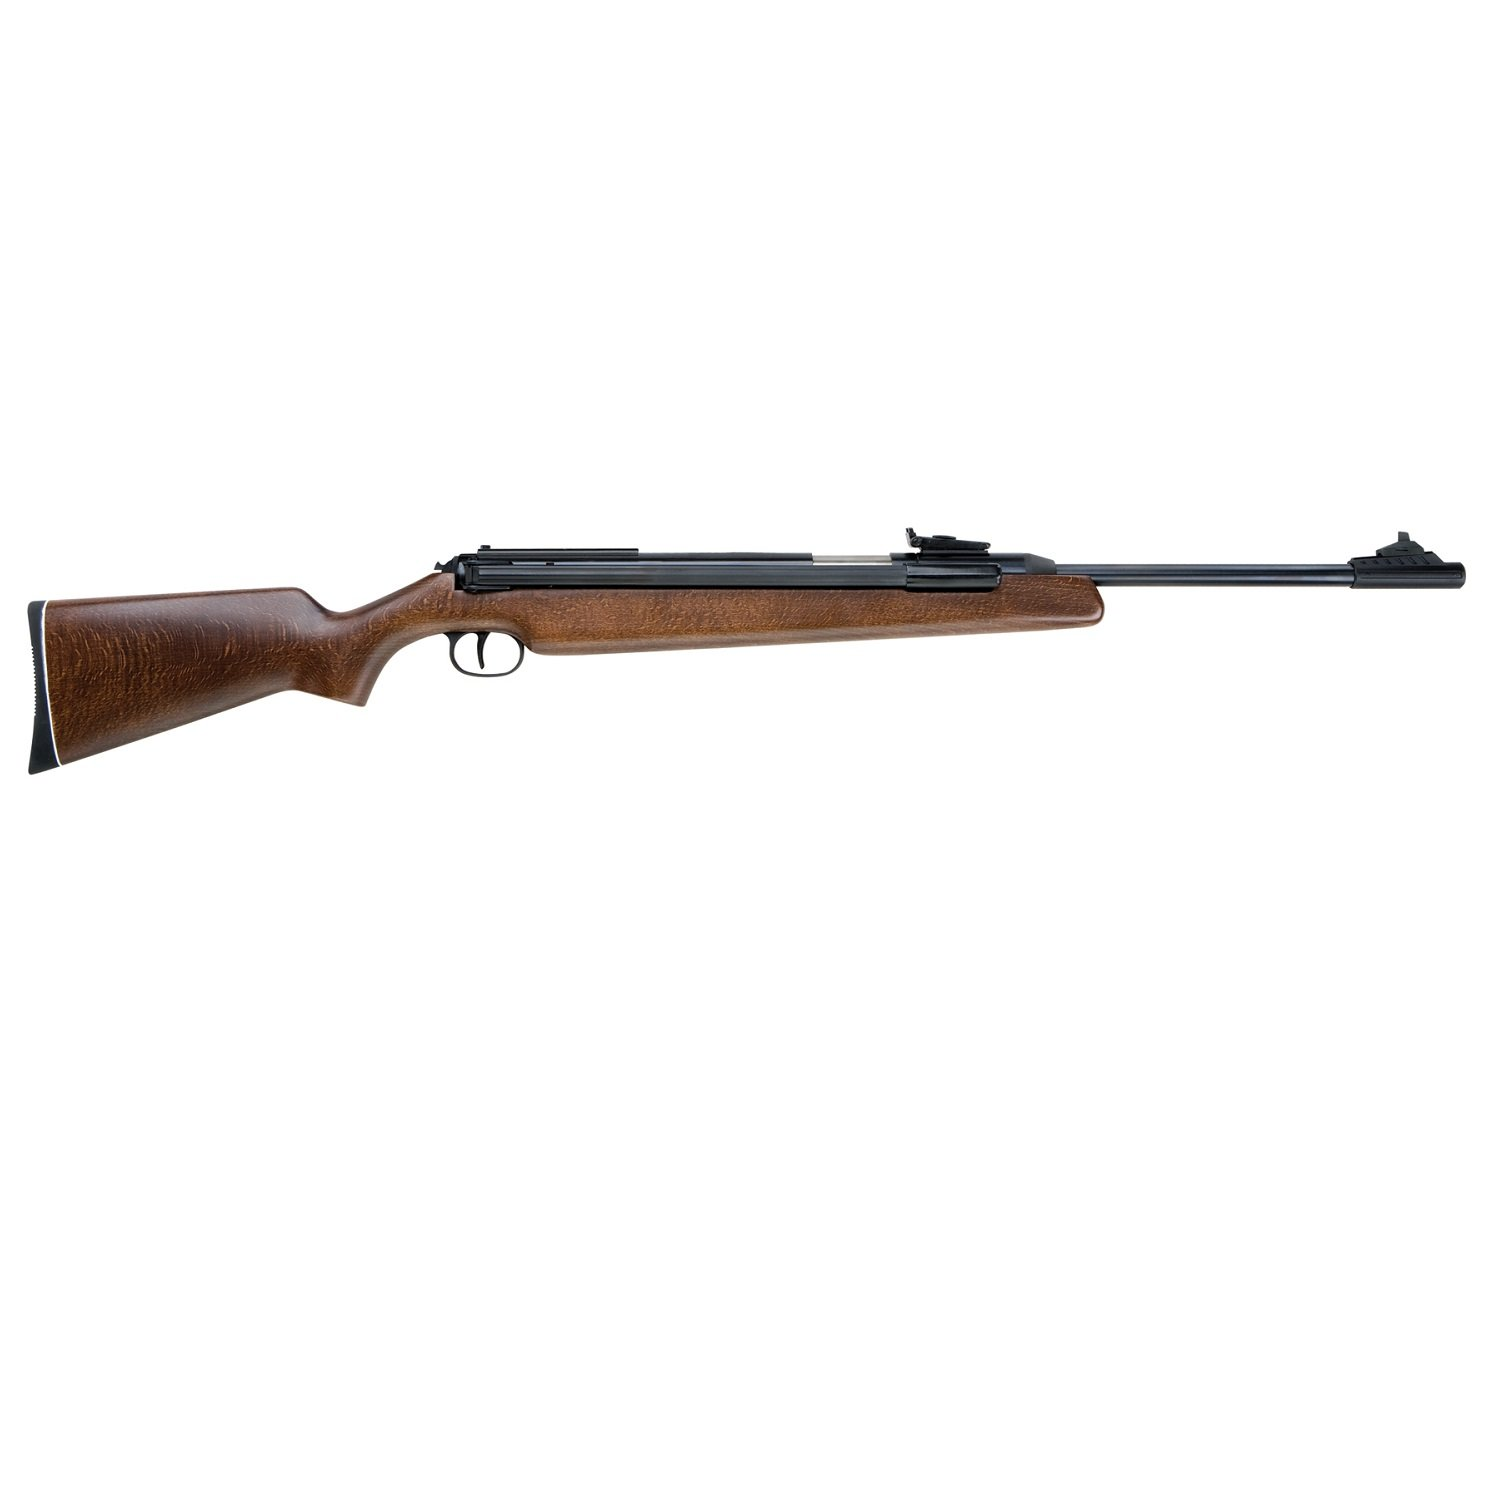 Amazon.com : RWS Diana 48 Air Rifle, TO6 Trigger air rifle : Hunting Air  Rifles : Sports & Outdoors